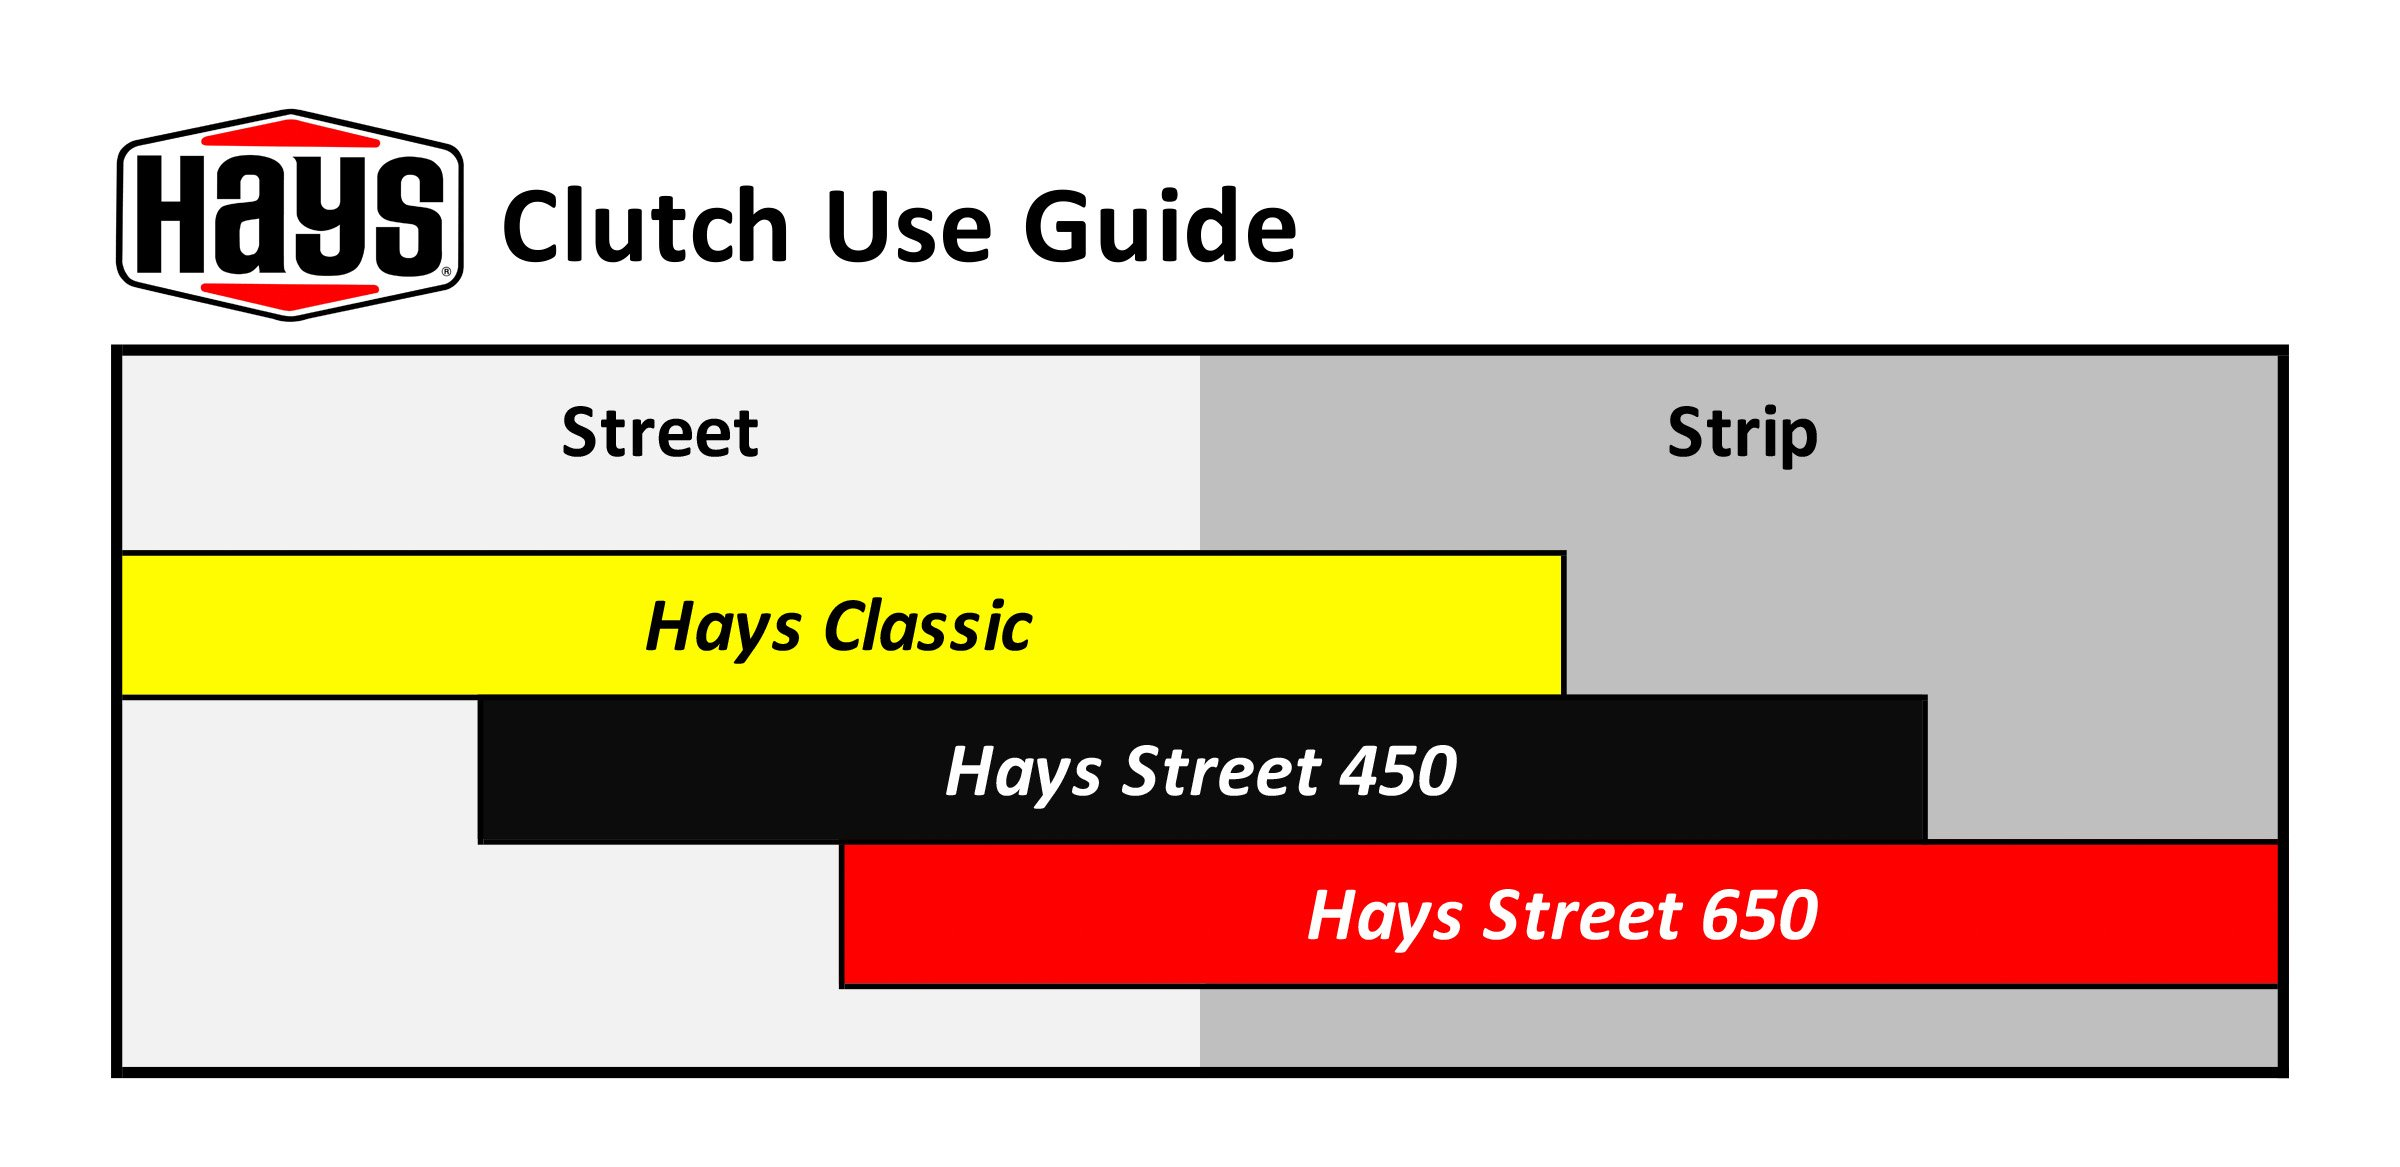 Hays Clutch Use Guide